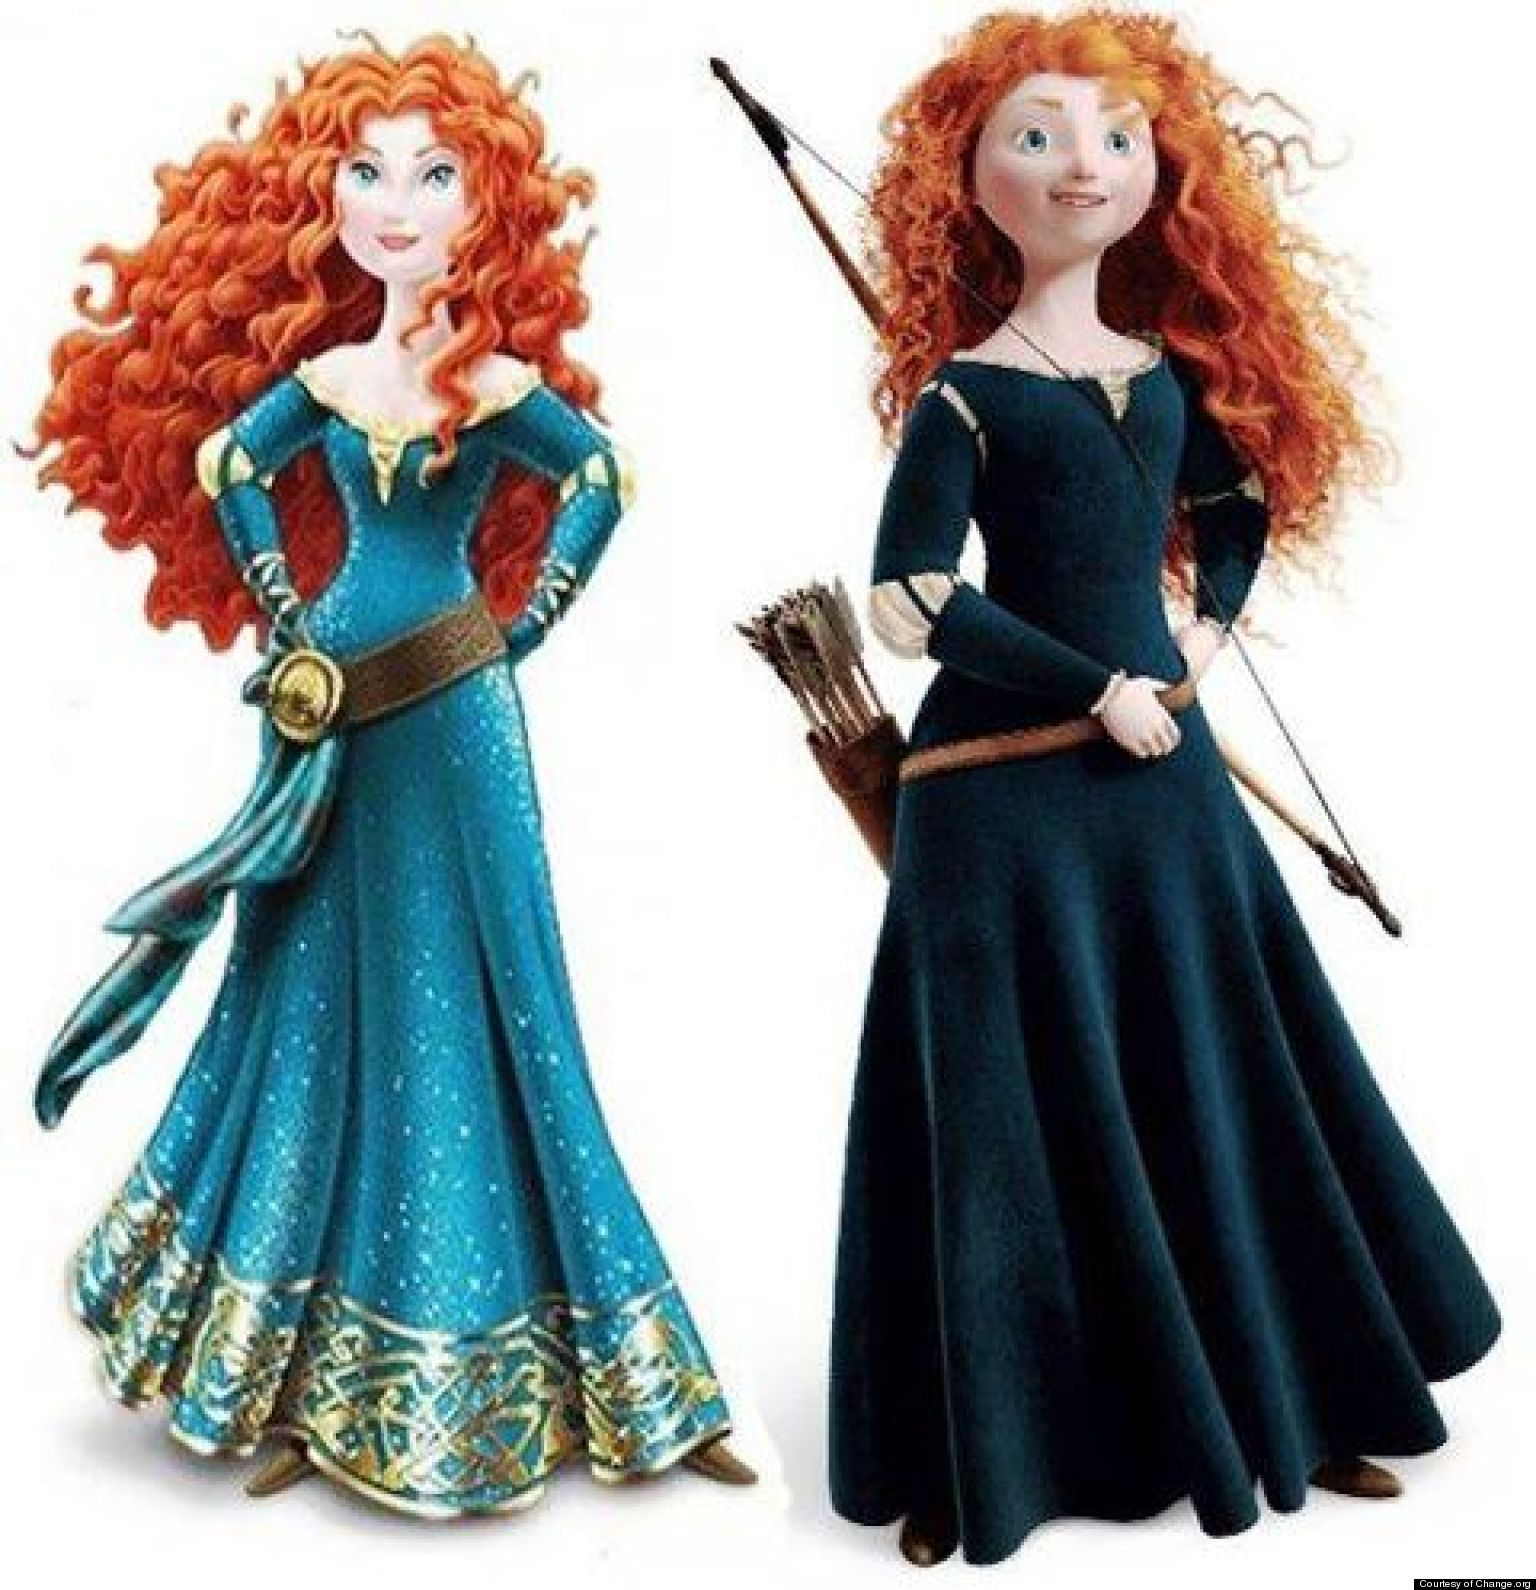 Merida From Brave Gets An Unnecessary Makeover Sparks